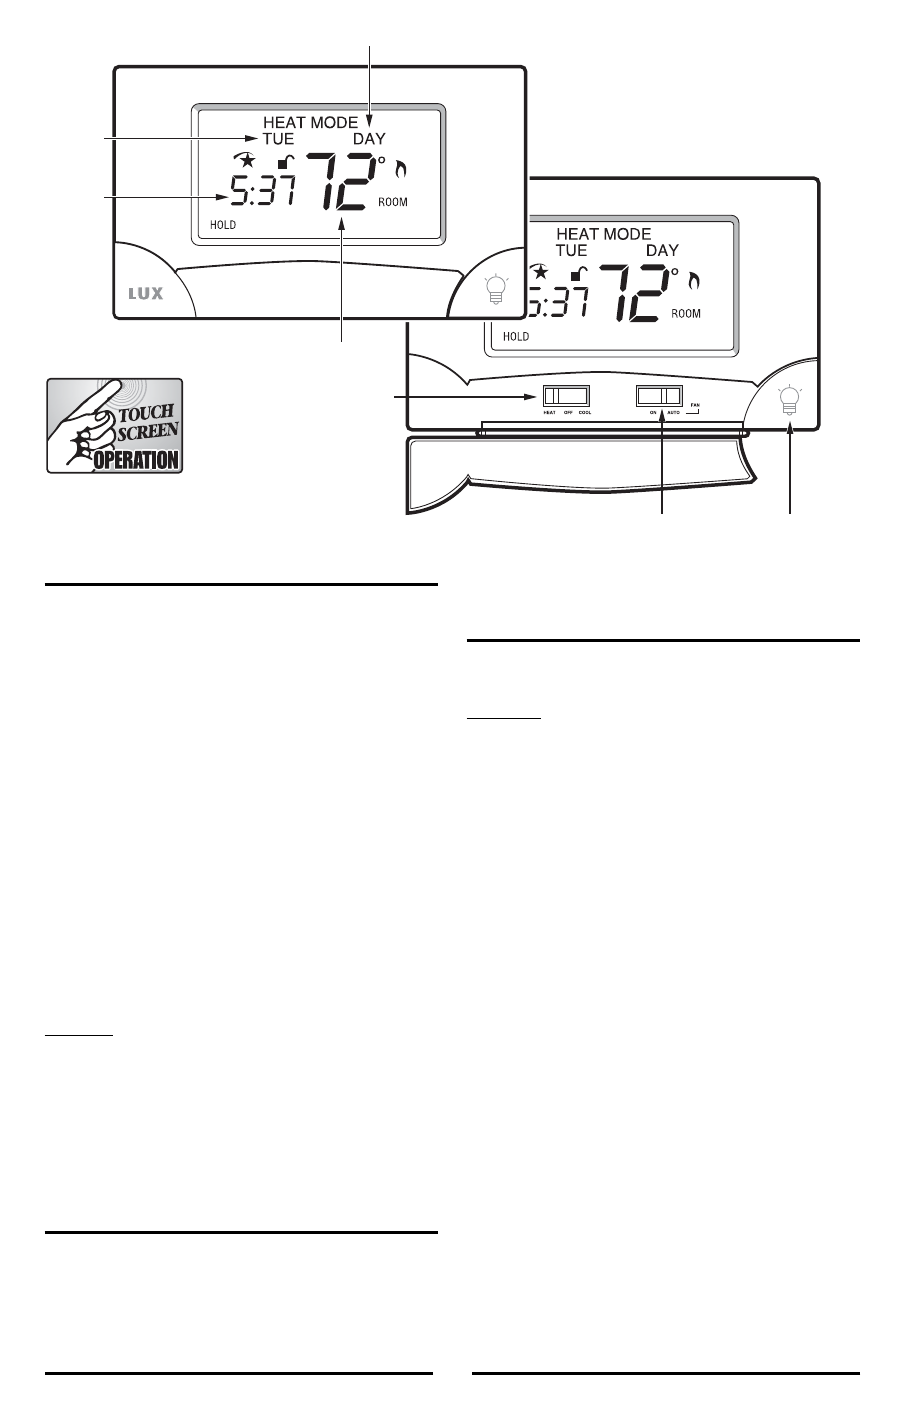 2013 08 01 archive furthermore Honeywell Wiring Diagrams Thermostat 2 Wire furthermore Filtrete Thermostat Wiring Diagram furthermore Vivint Thermostat Heat Pump also Honeywell Rth9580wf Thermostat Wiring Diagram. on hunter programmable thermostat wiring diagram